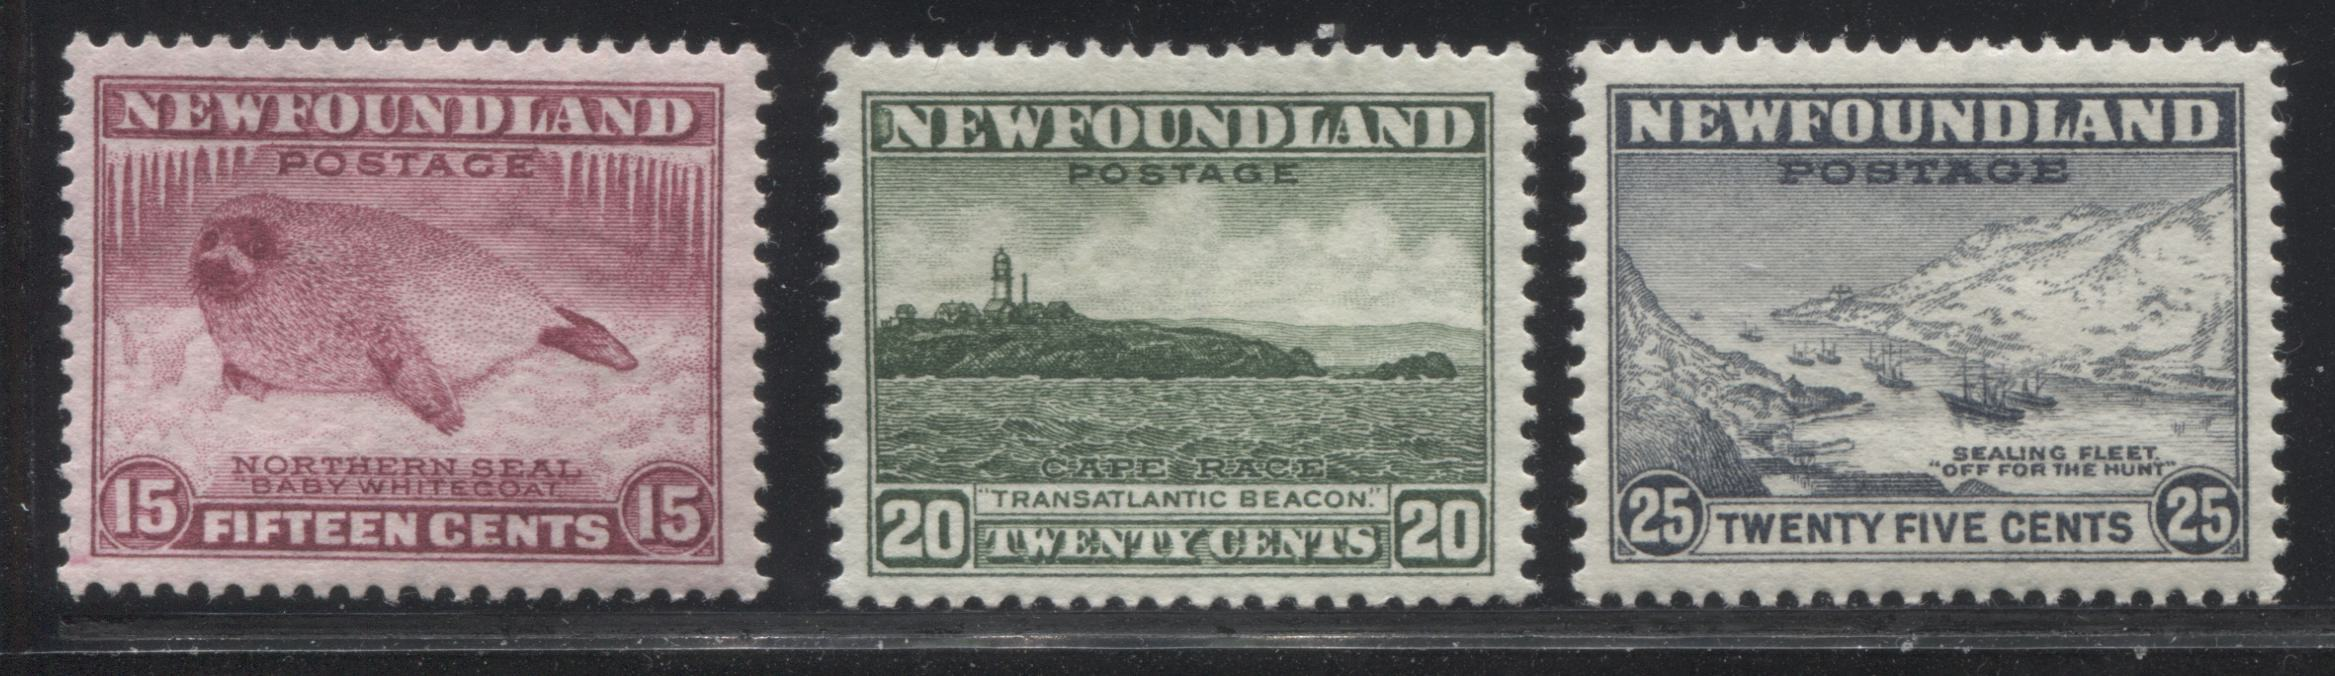 shopify auction Brixton Chrome Newfoundland #195-197 15c Claret - 25c Slate Grey 1932-1939 First Resources Issue, Three Very Fine OG Examples-145634-88867